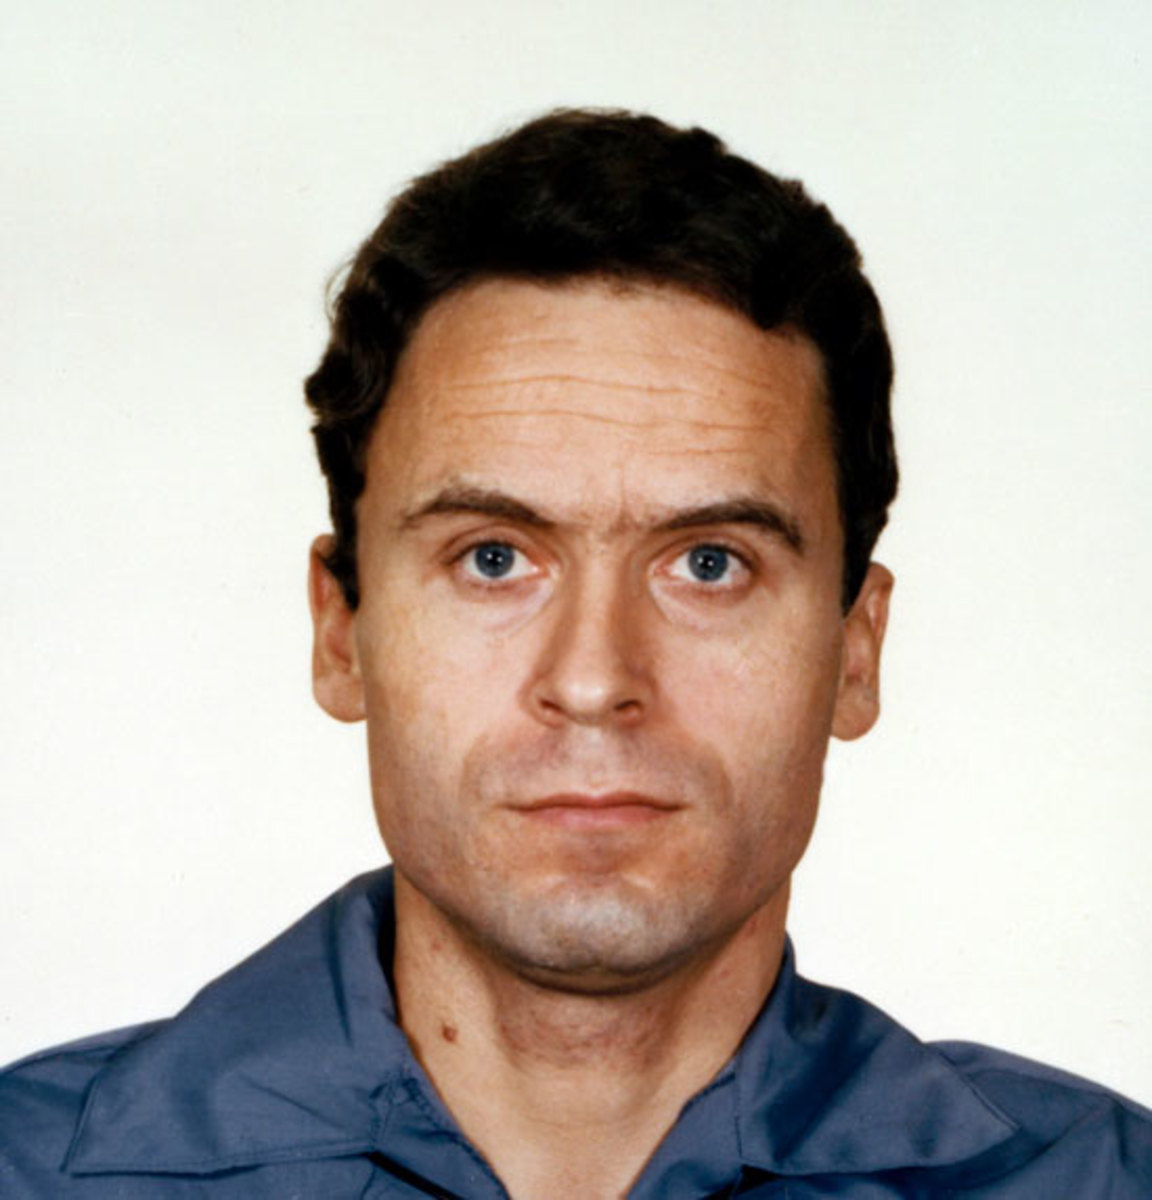 Ted Bundy alluded to killing 100 people or more.